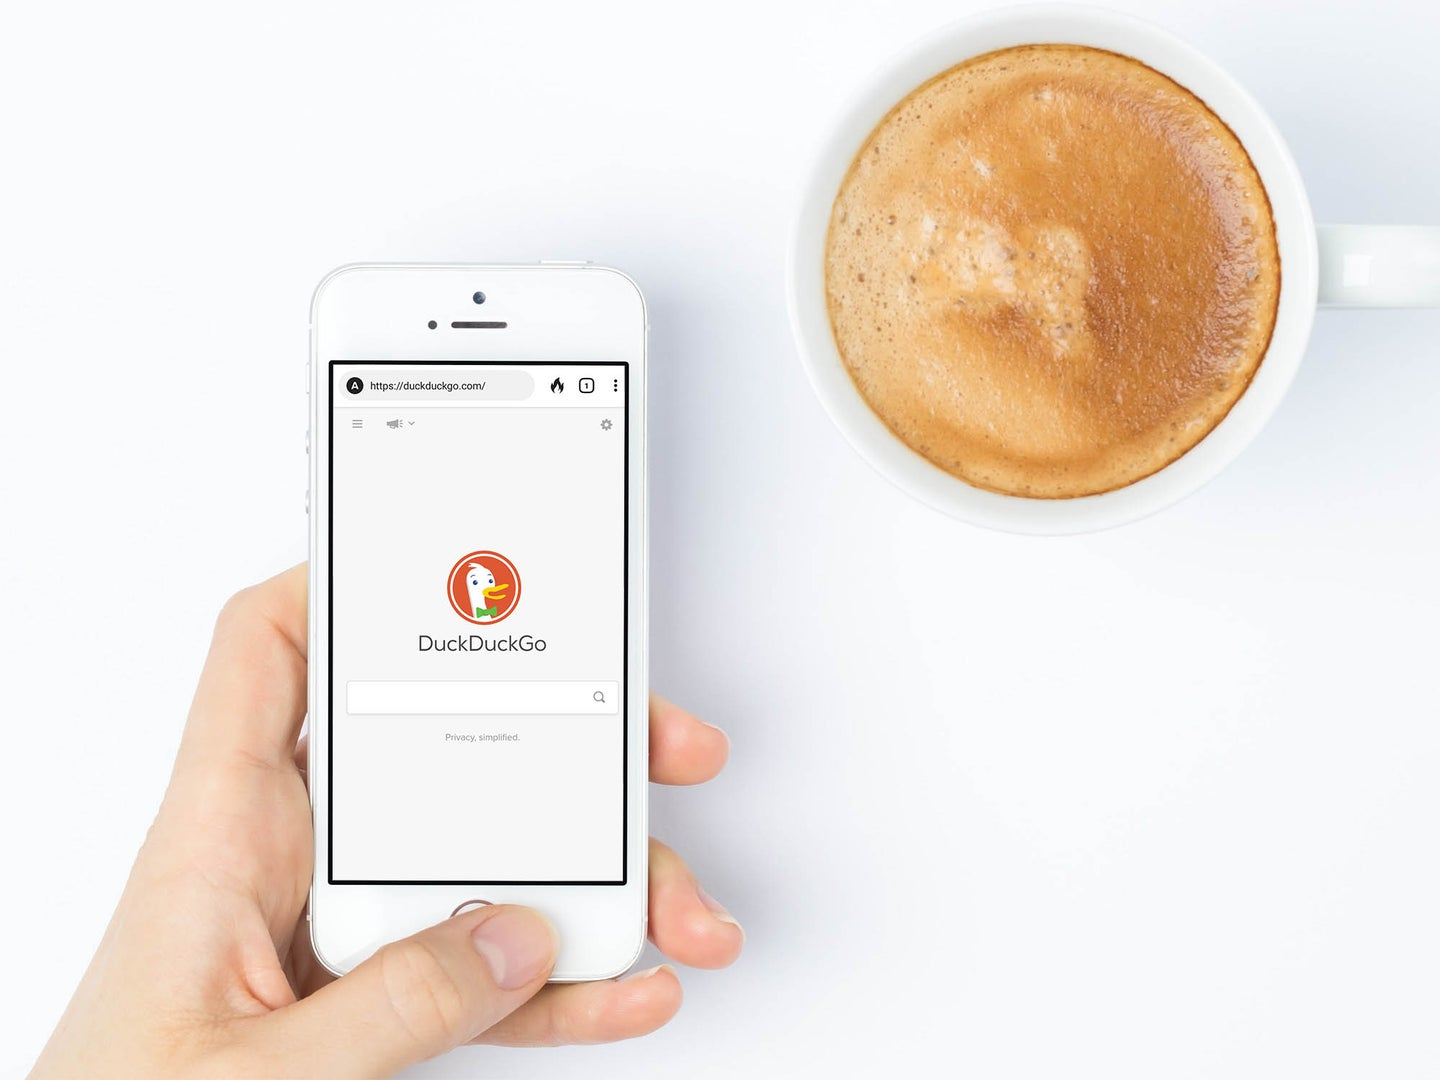 hand holding iphone with duckduckgo app